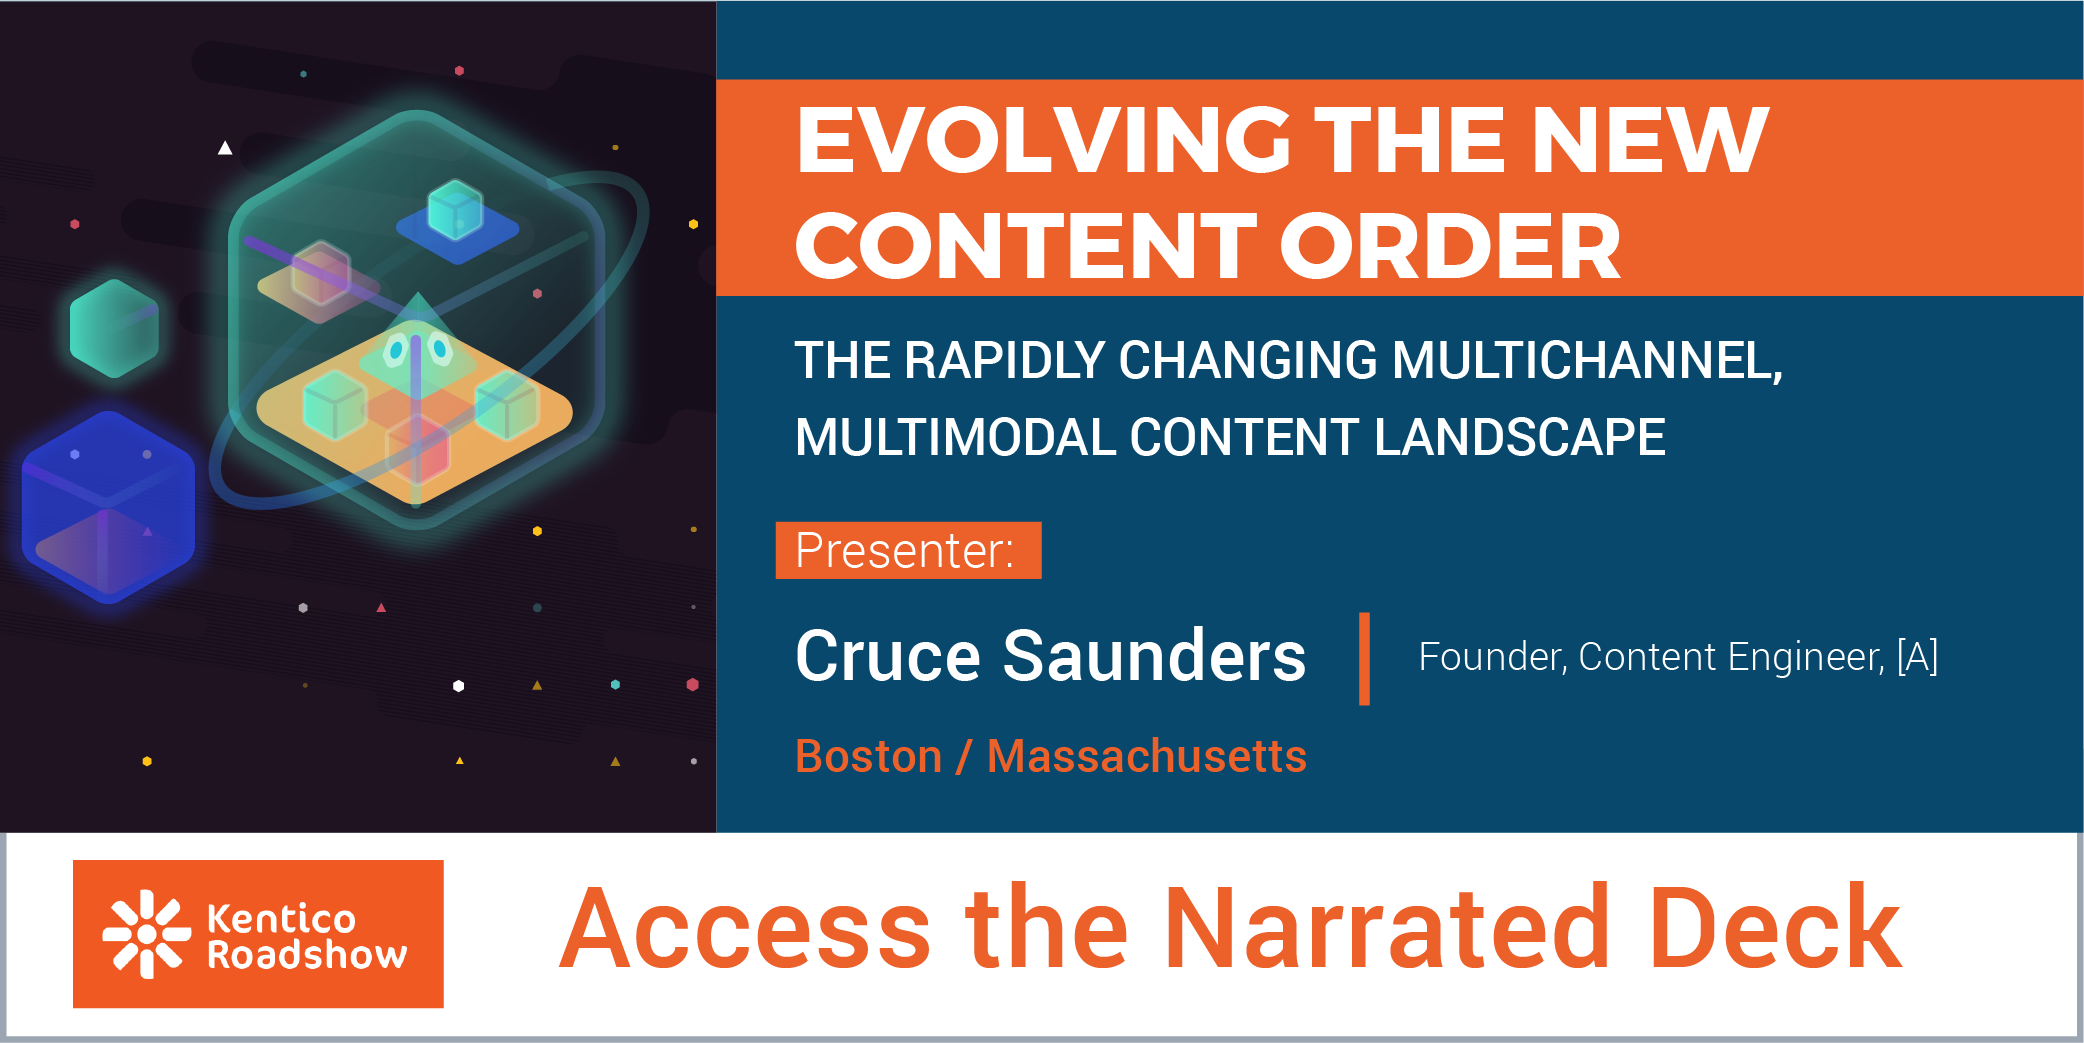 Kentico Roadshow Boston: Presentation by [A]'s Founder Cruce Saunders